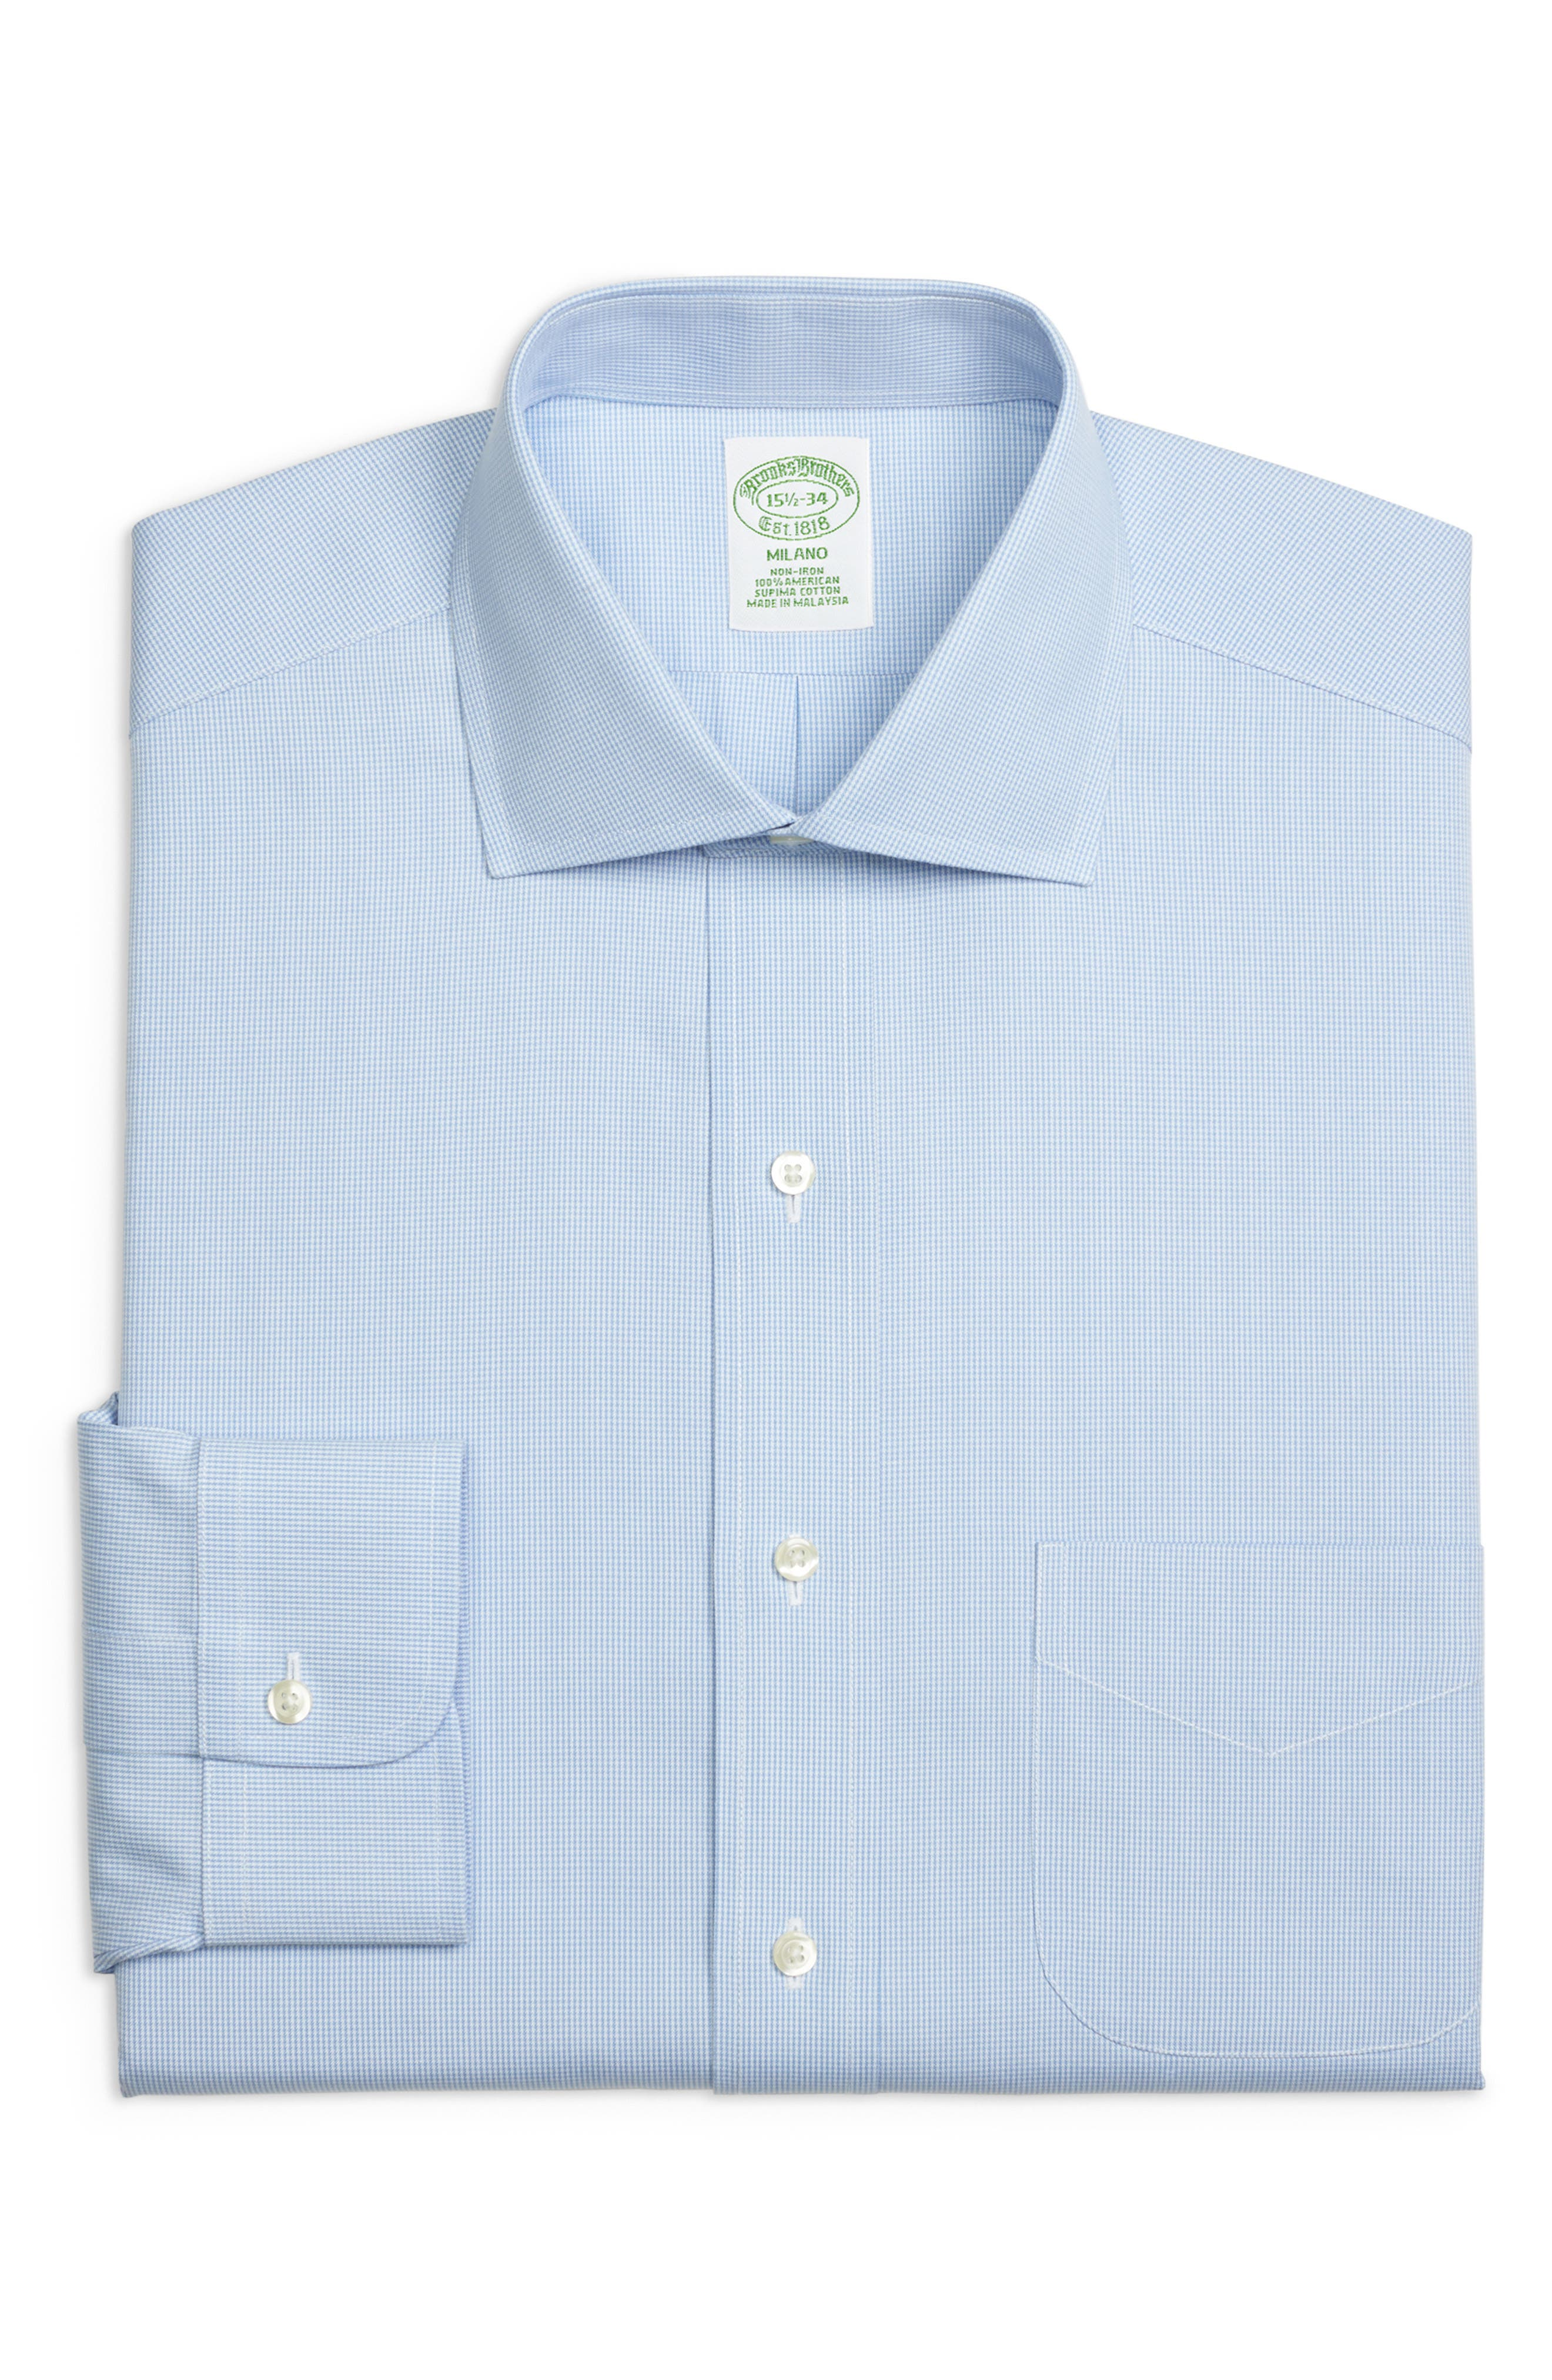 Trim Fit Houndstooth Dress Shirt,                             Main thumbnail 1, color,                             LIGHT/ PASTEL BLUE